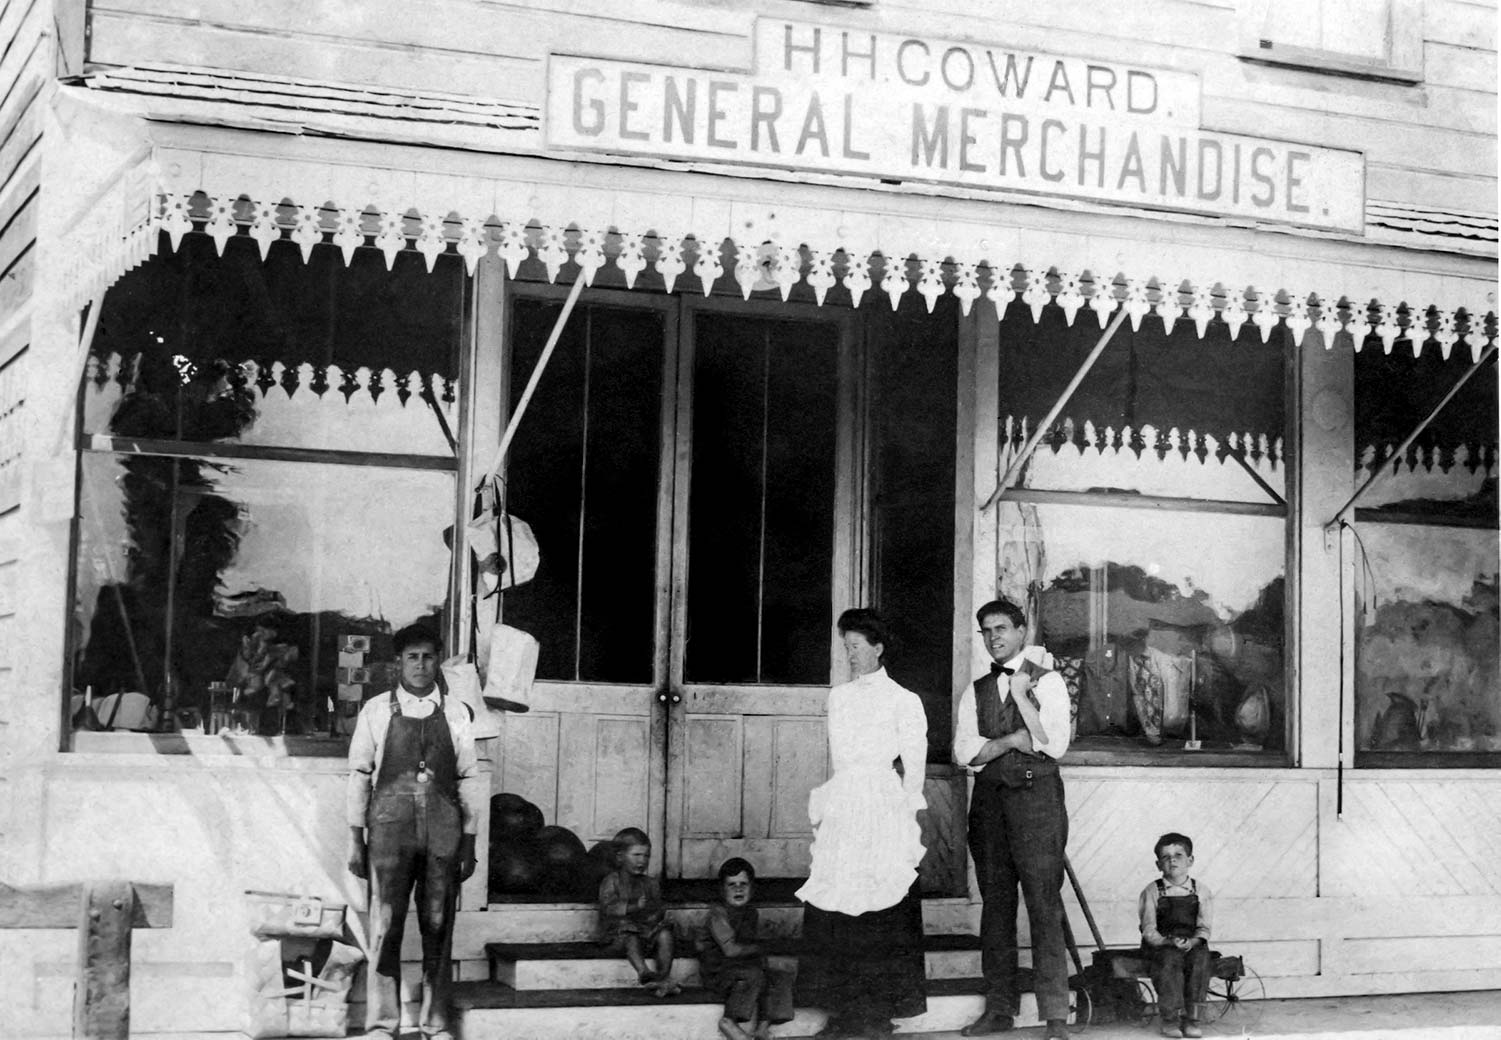 Coward's General Merchandise